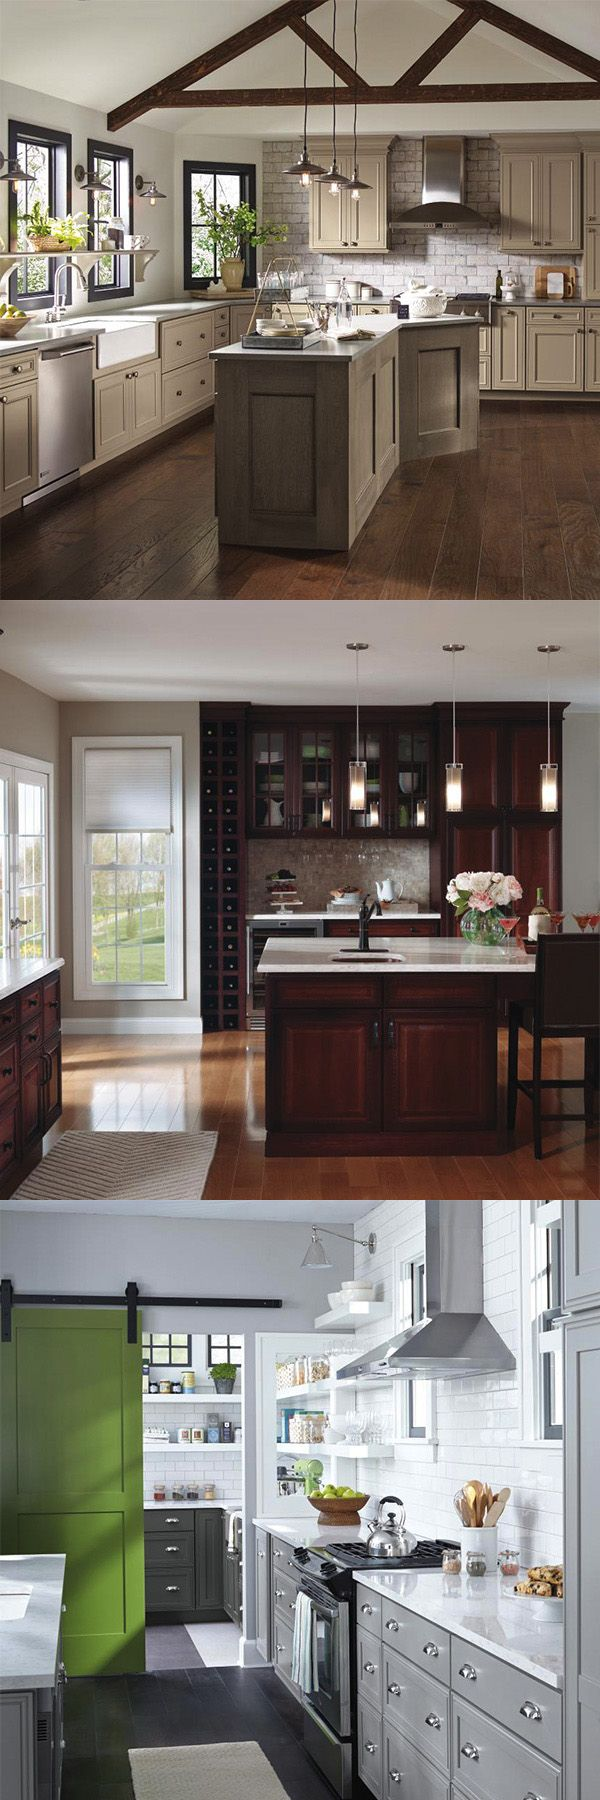 20 best Traditional Elegance images on Pinterest   Cream cabinets ...